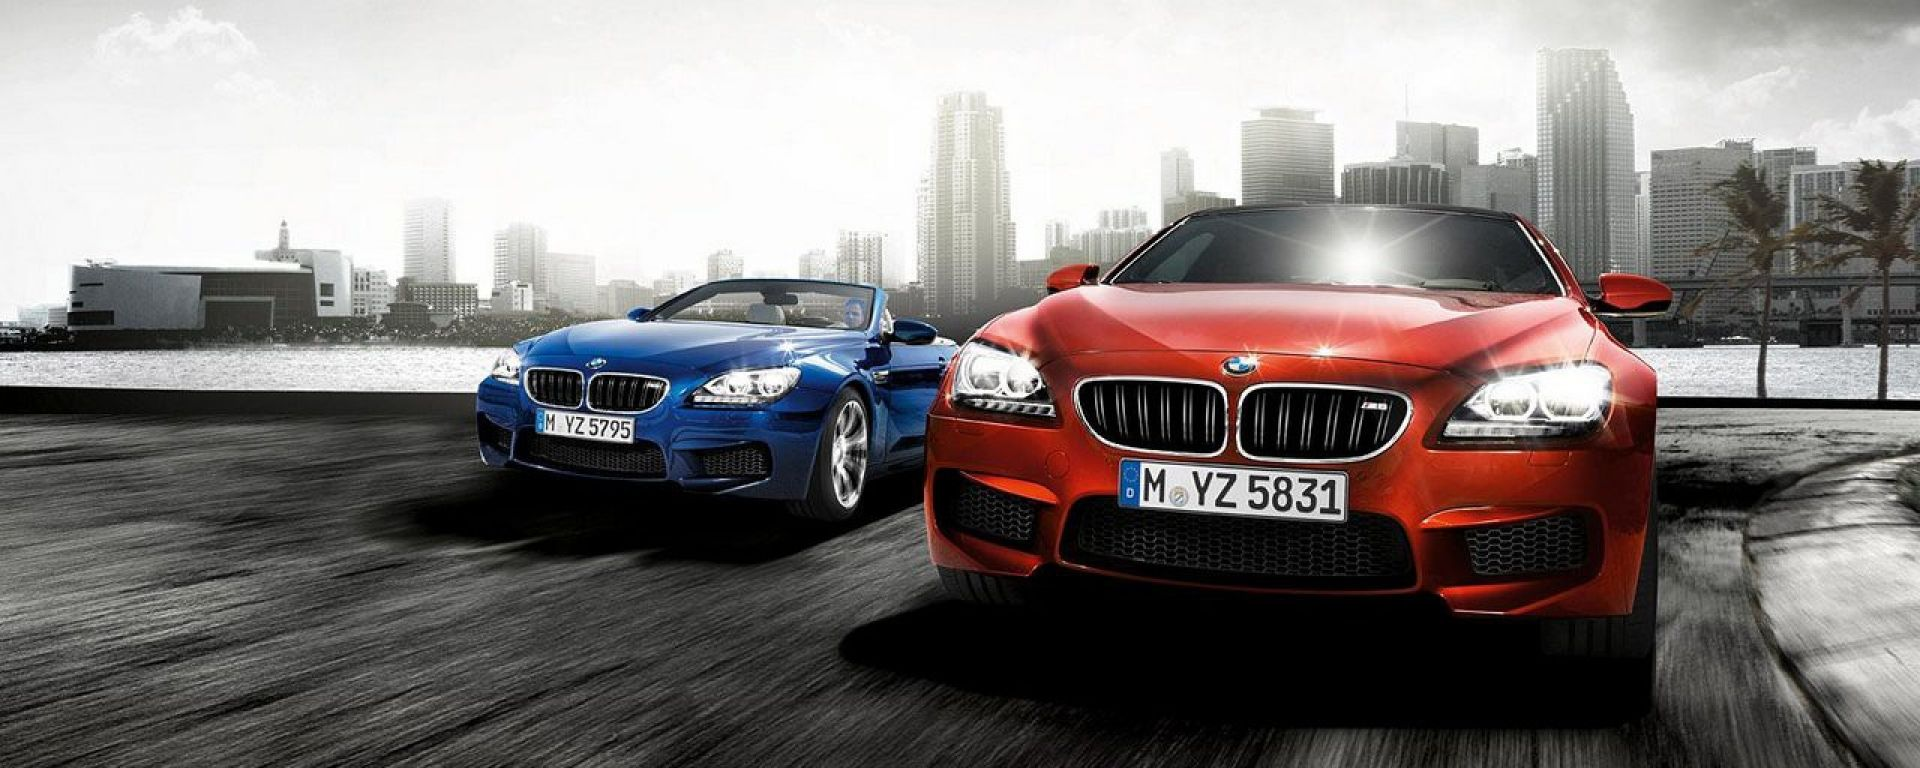 Bmw M6: arriva il Competition package